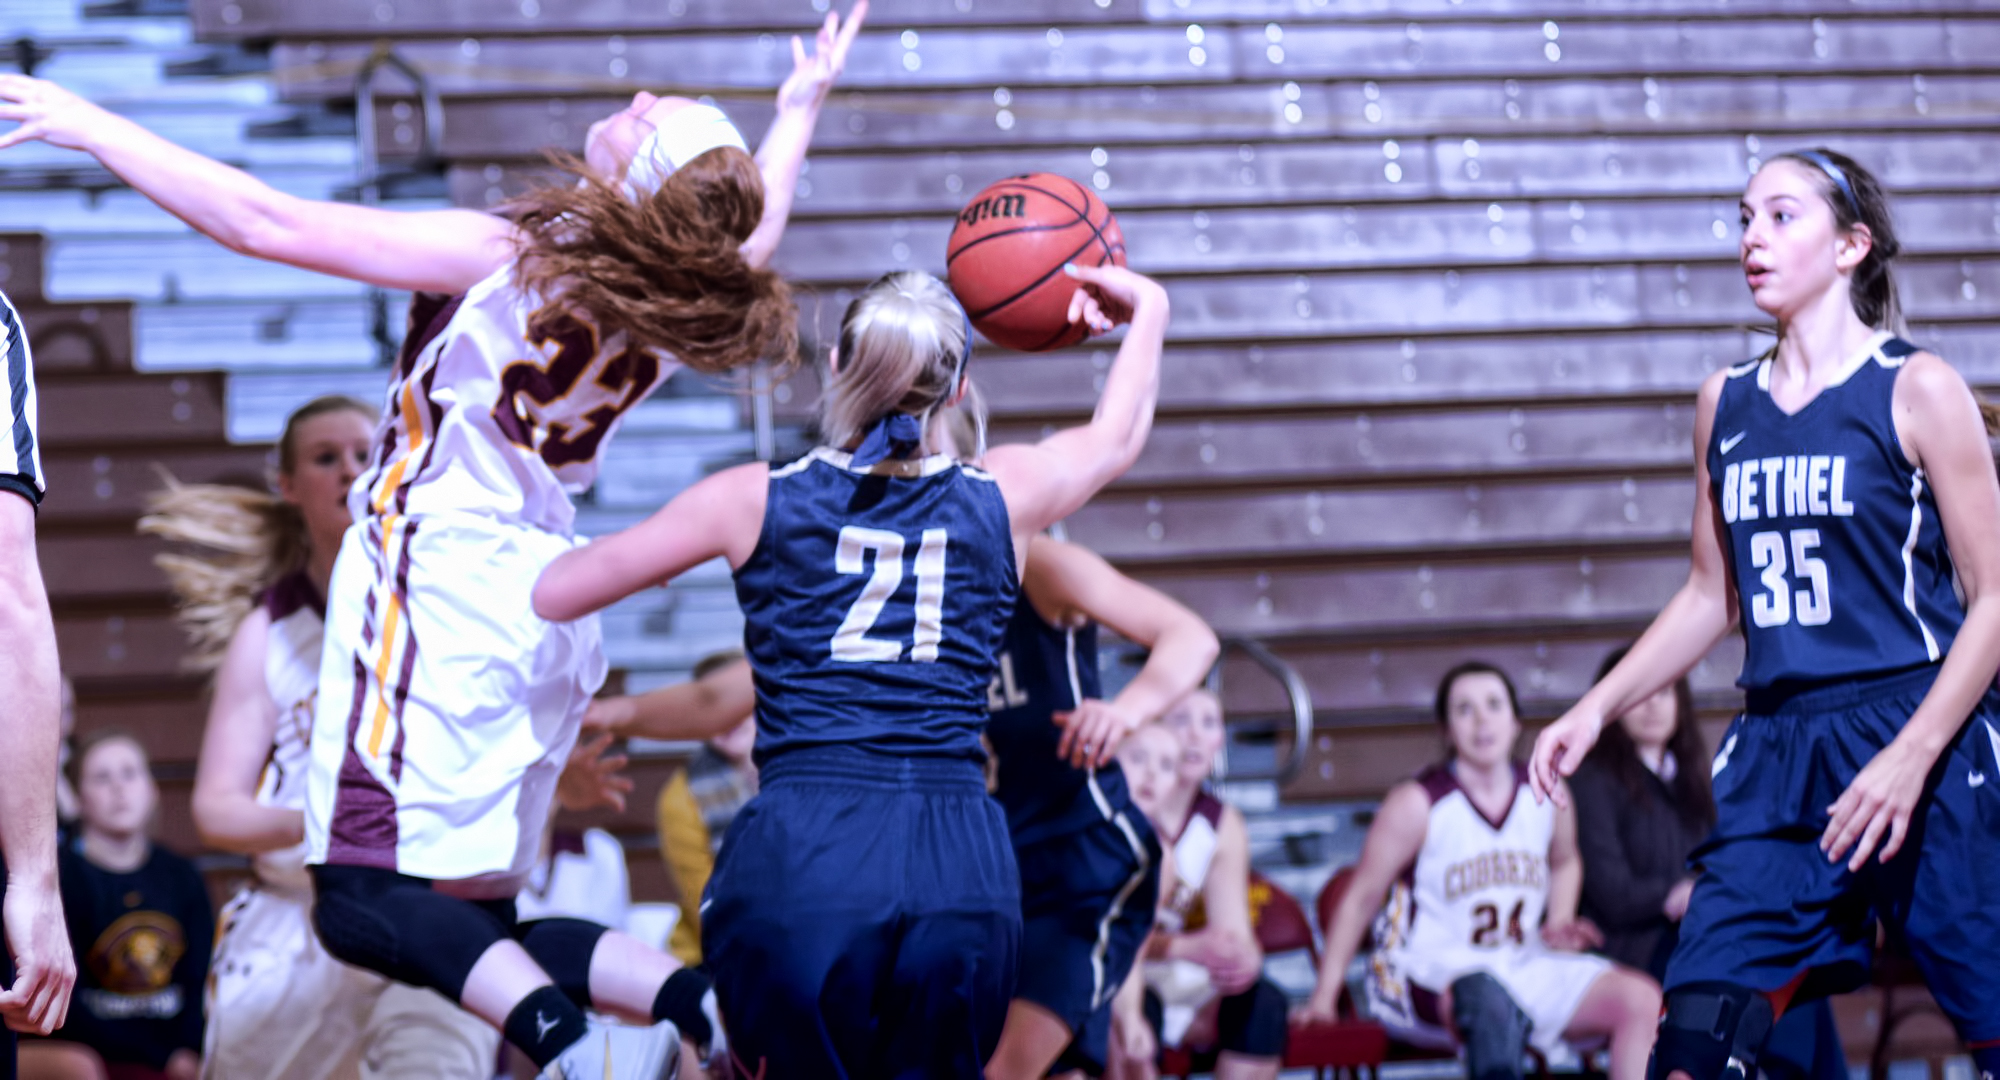 Freshman Rachel Hoernemann goes for a rebound in the second half of the Cobbers' game against Bethel. She had a career-high seven points.